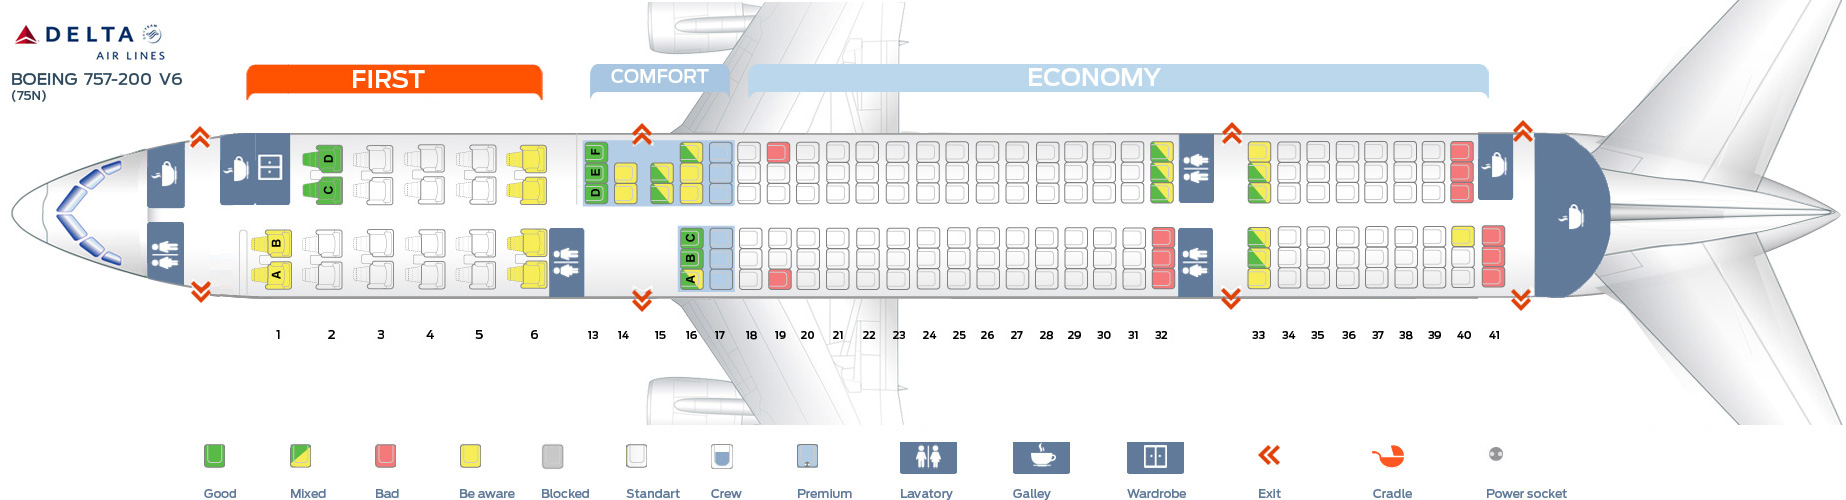 Delta airlines flight seat assignment